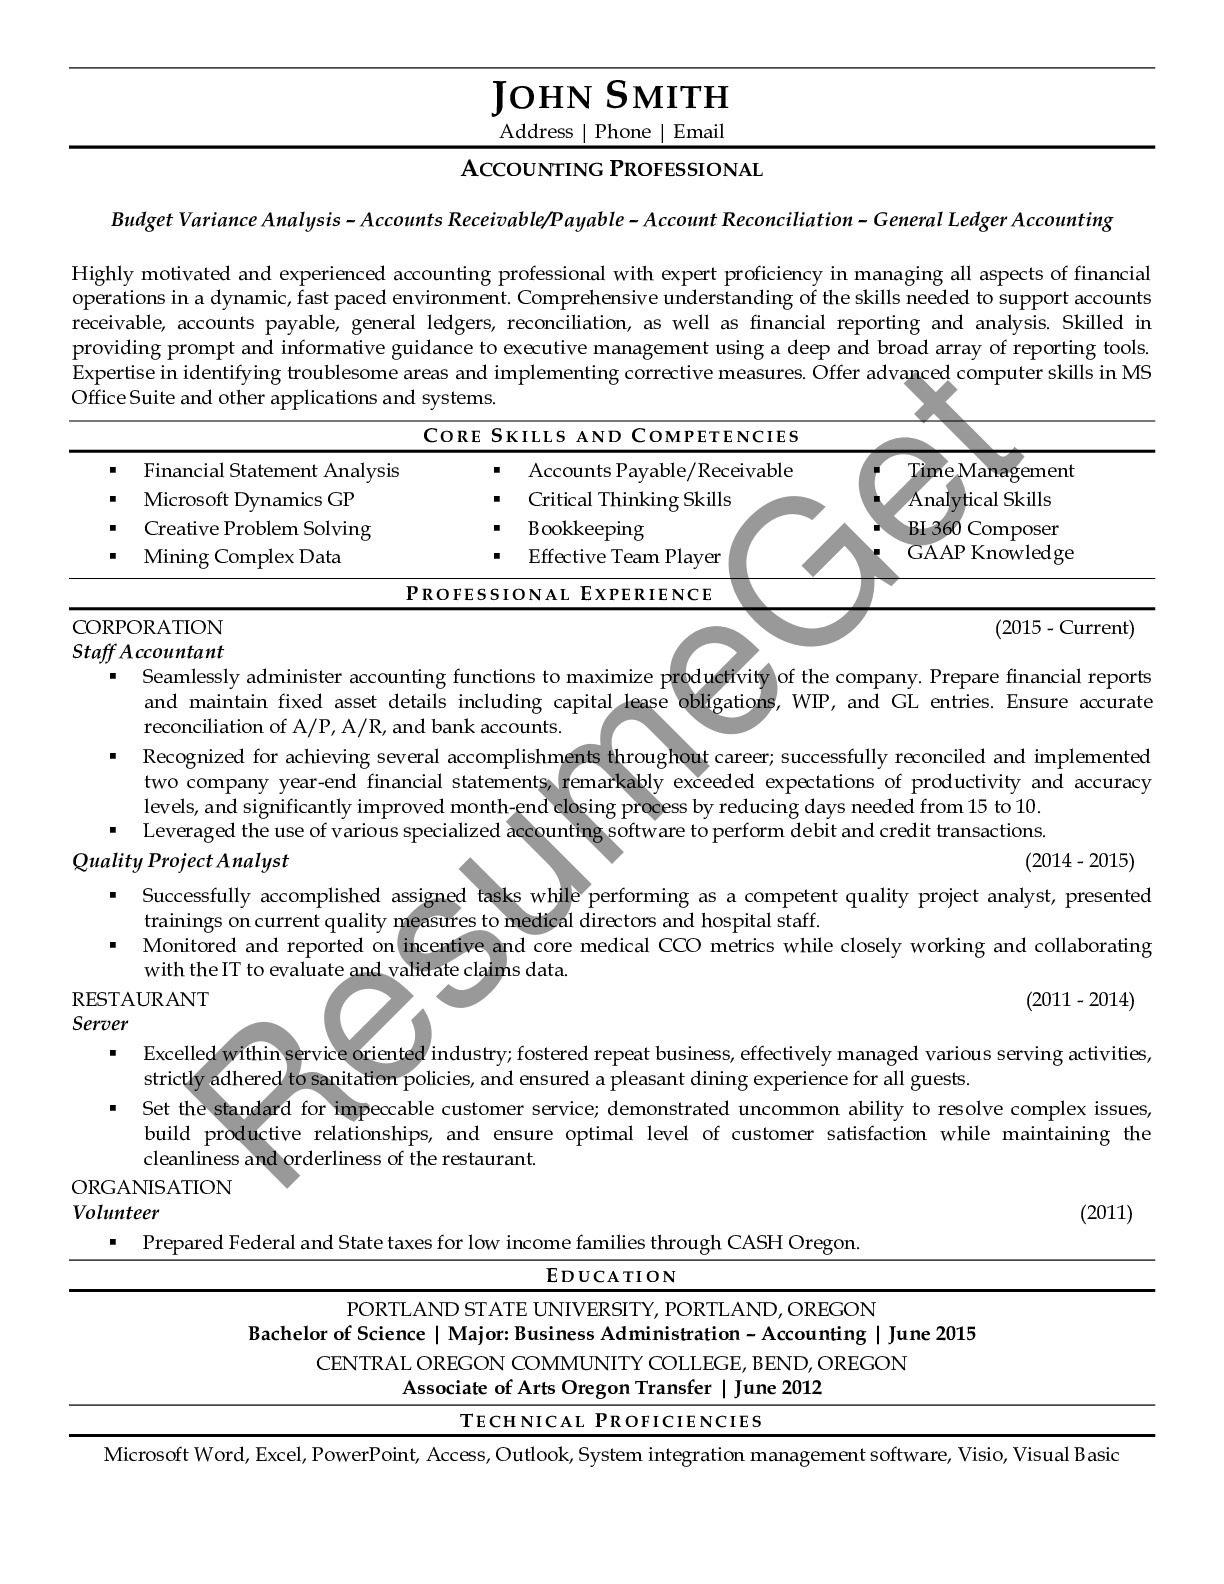 Resume Example for Accountant